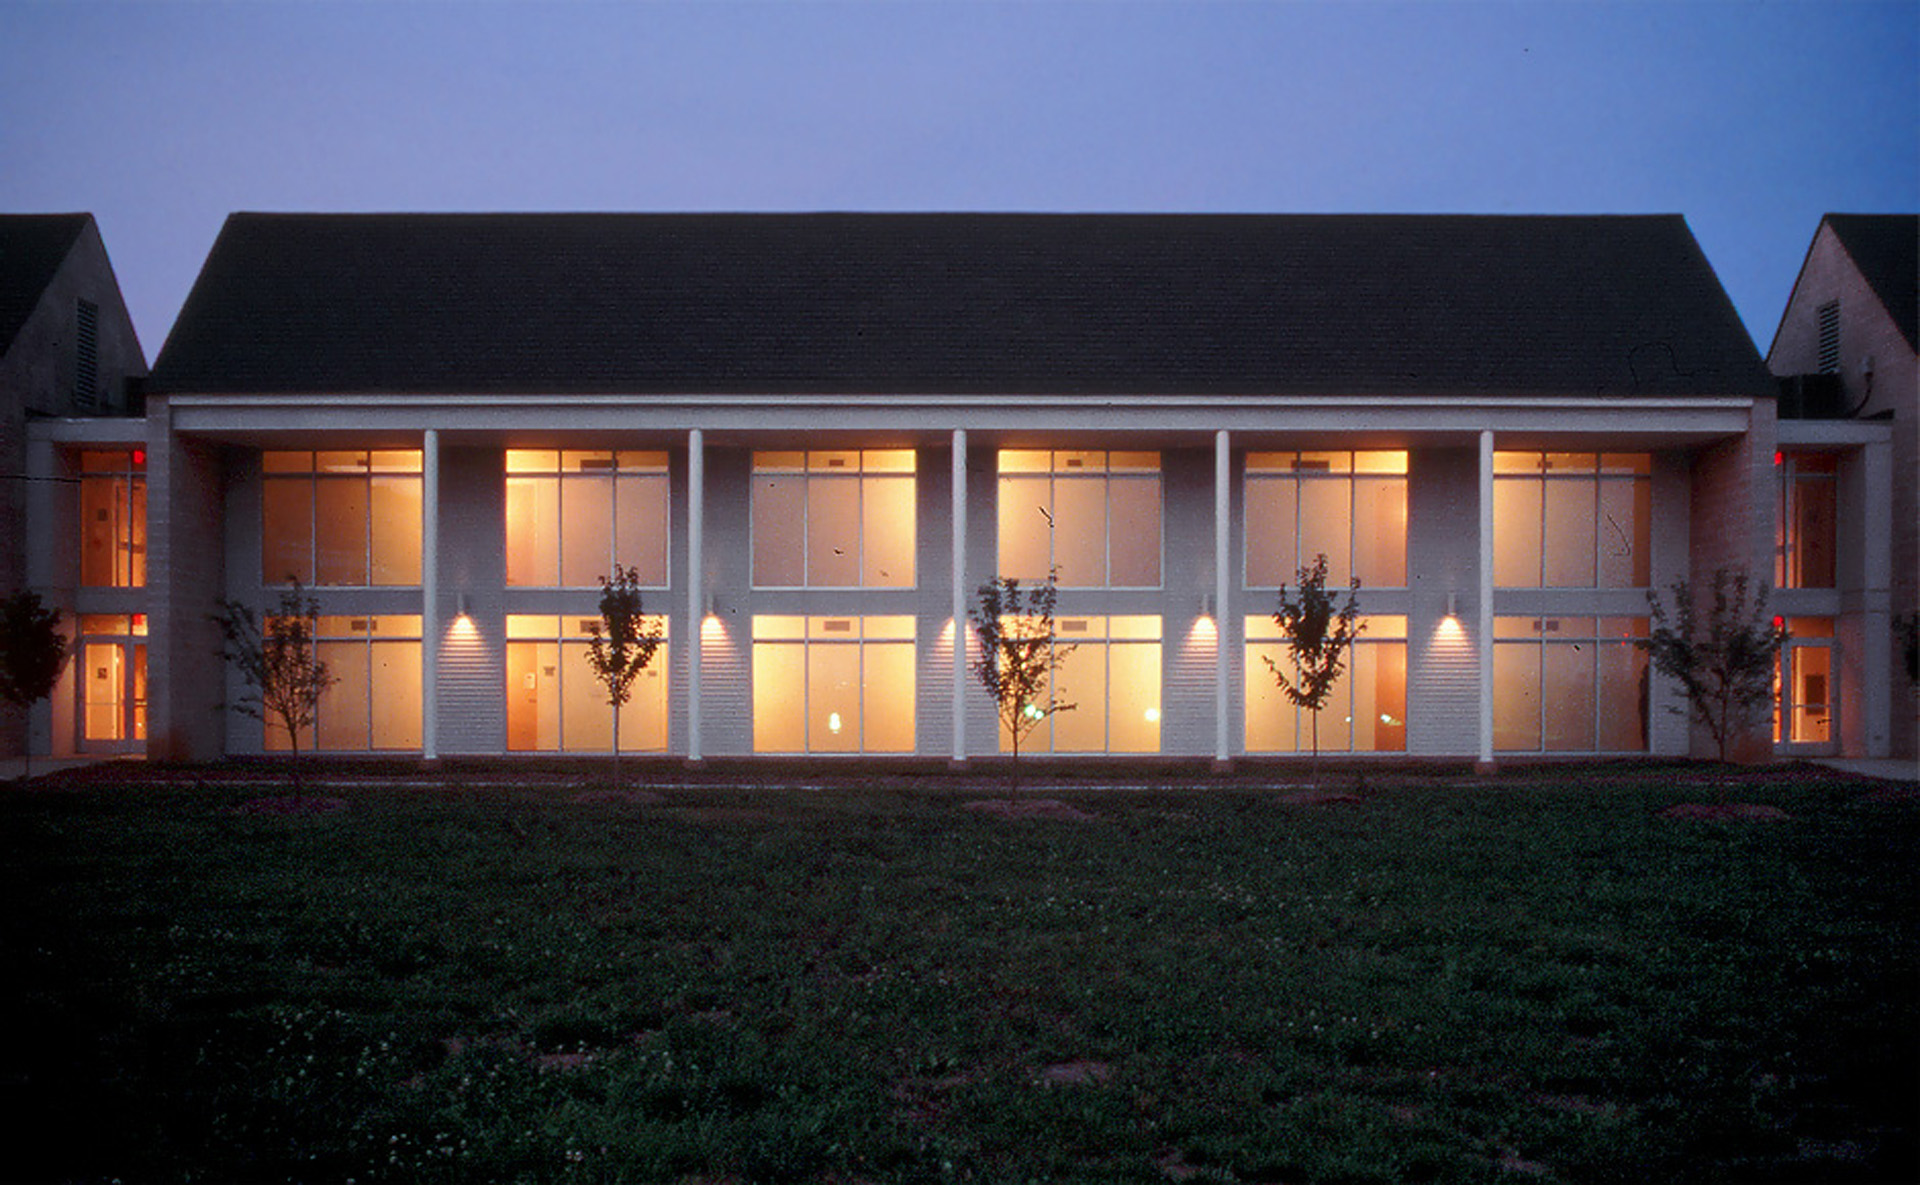 Domestic Violence Intervention Center, Tennessee, architecture, design, new construction, exterior photos, interior photos